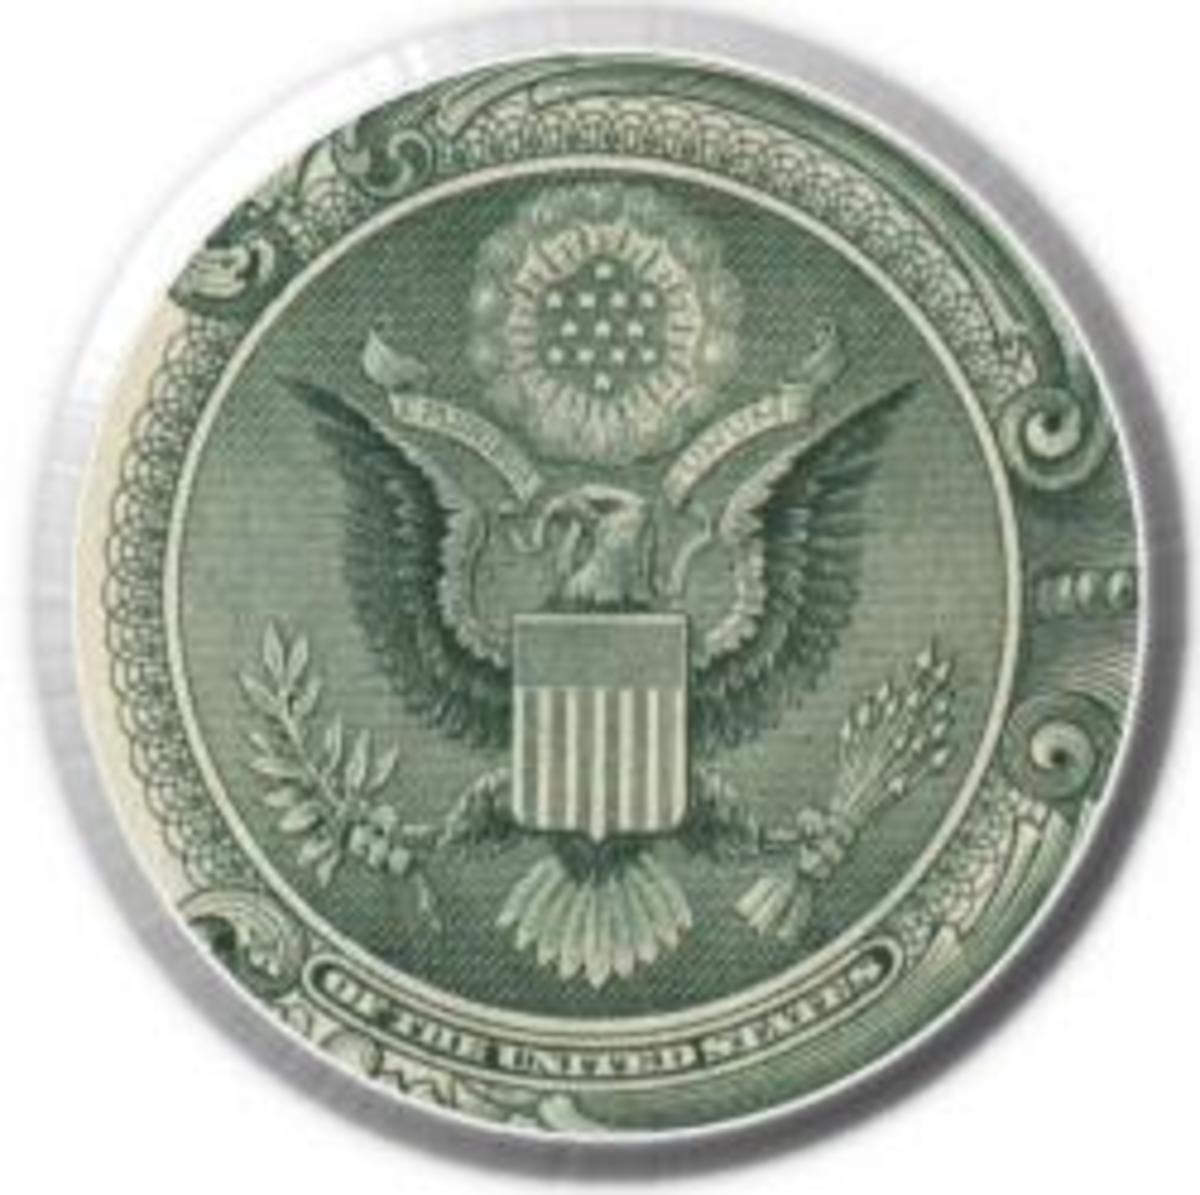 freemasons and the symbols on the dollar bill hubpages